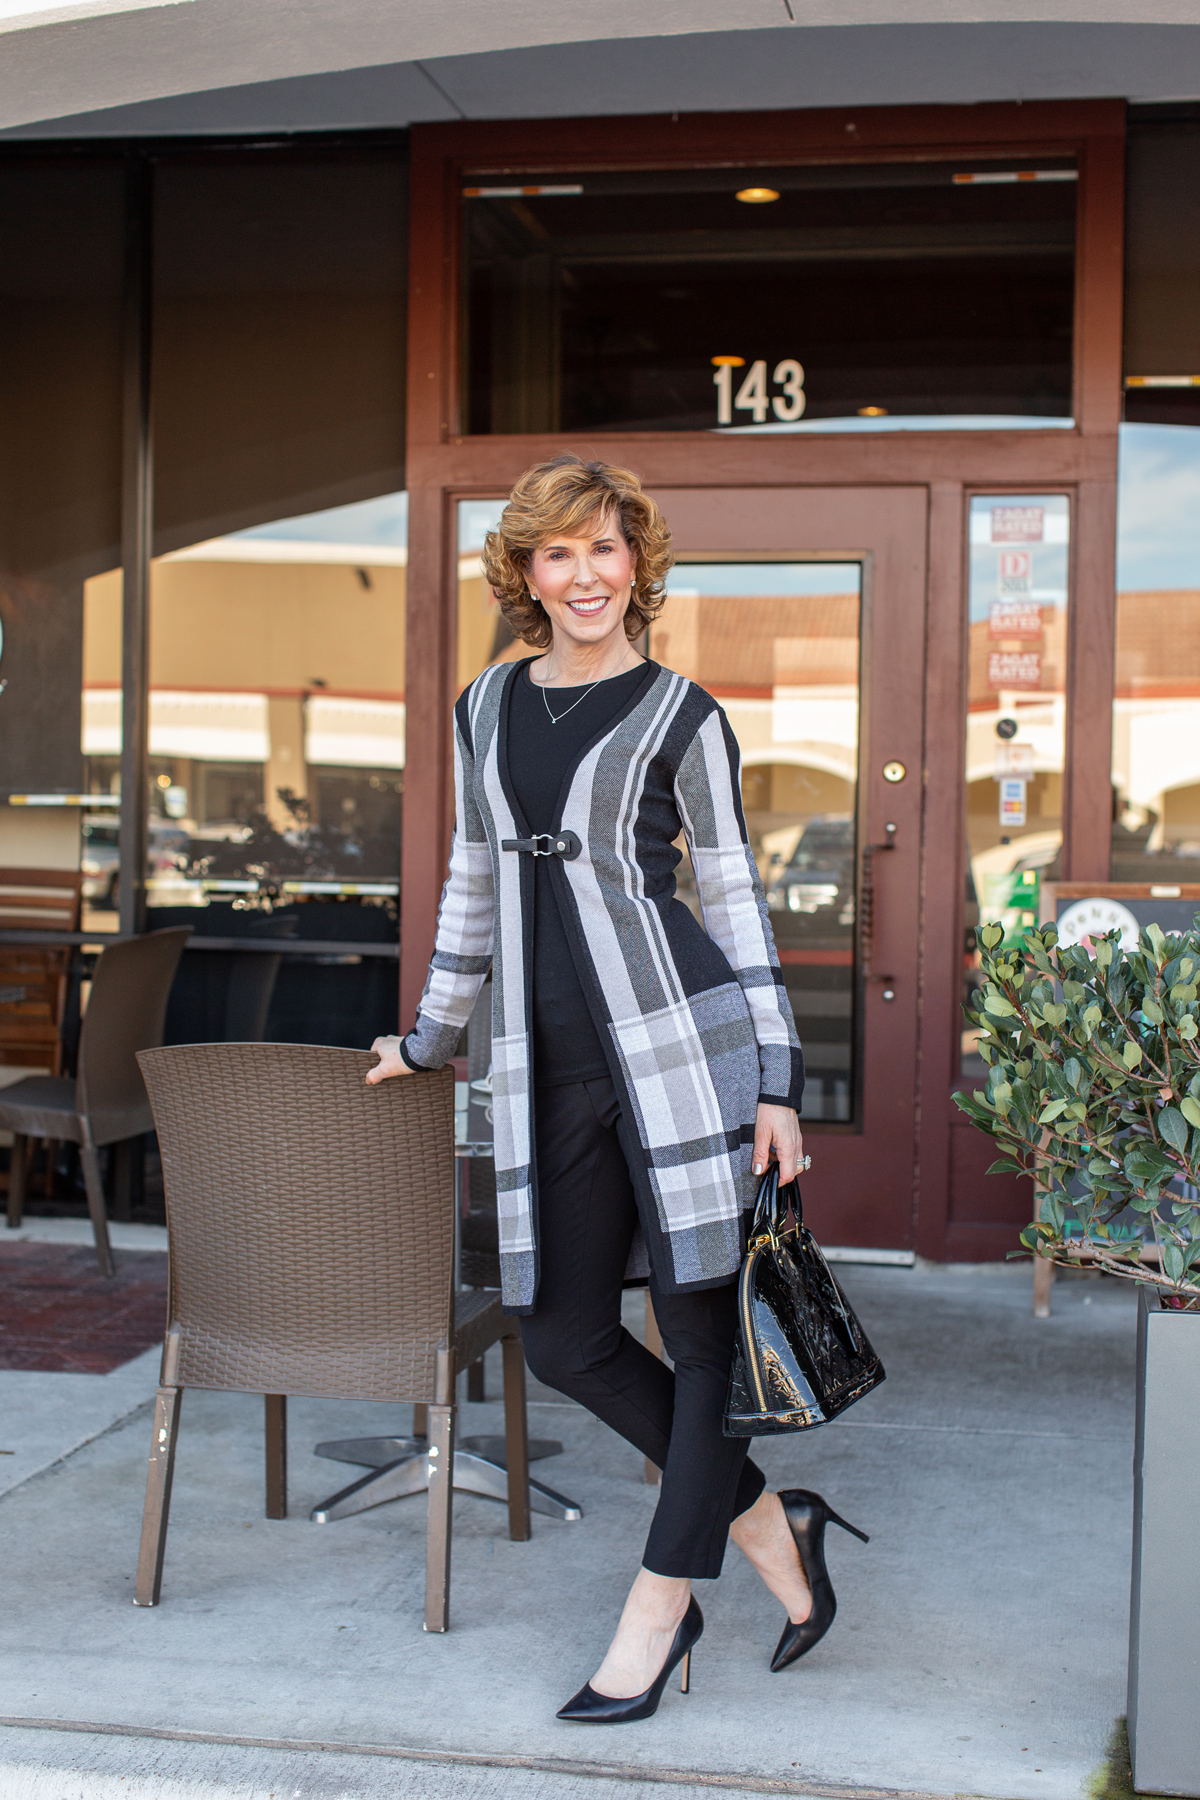 woman over fifty wearing a black plaid coat and black pants standing in front of a restaurant